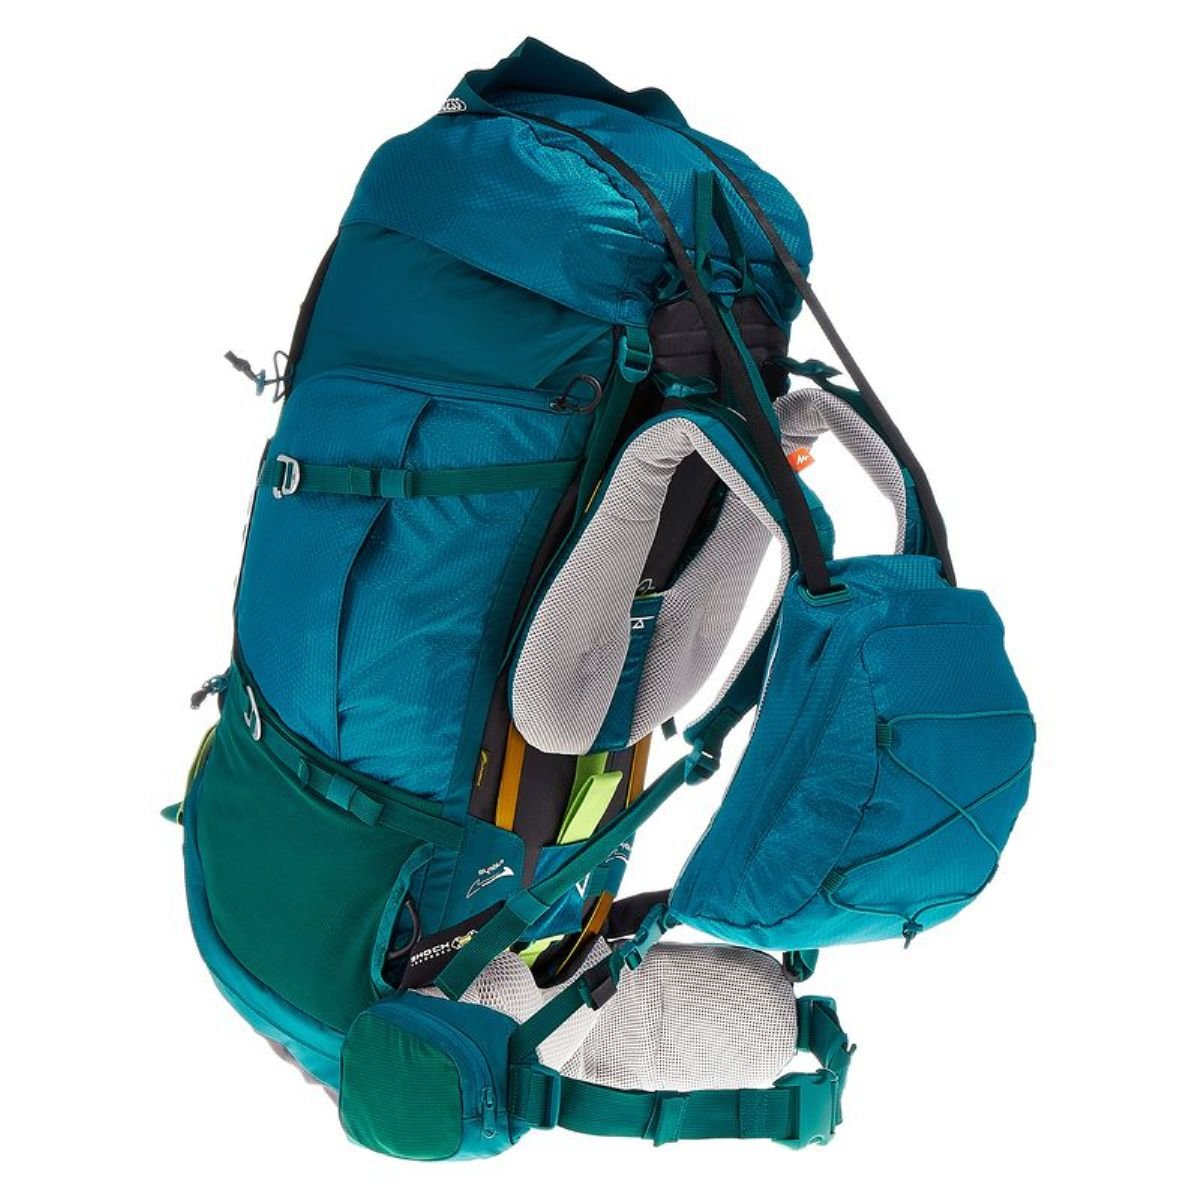 Amazon.com: DECATHLON QUECHUA SYMBIUM ACCESS 70+10L WOMENS TREKKING BACKPACK - LIGHT BLUE: Clothing